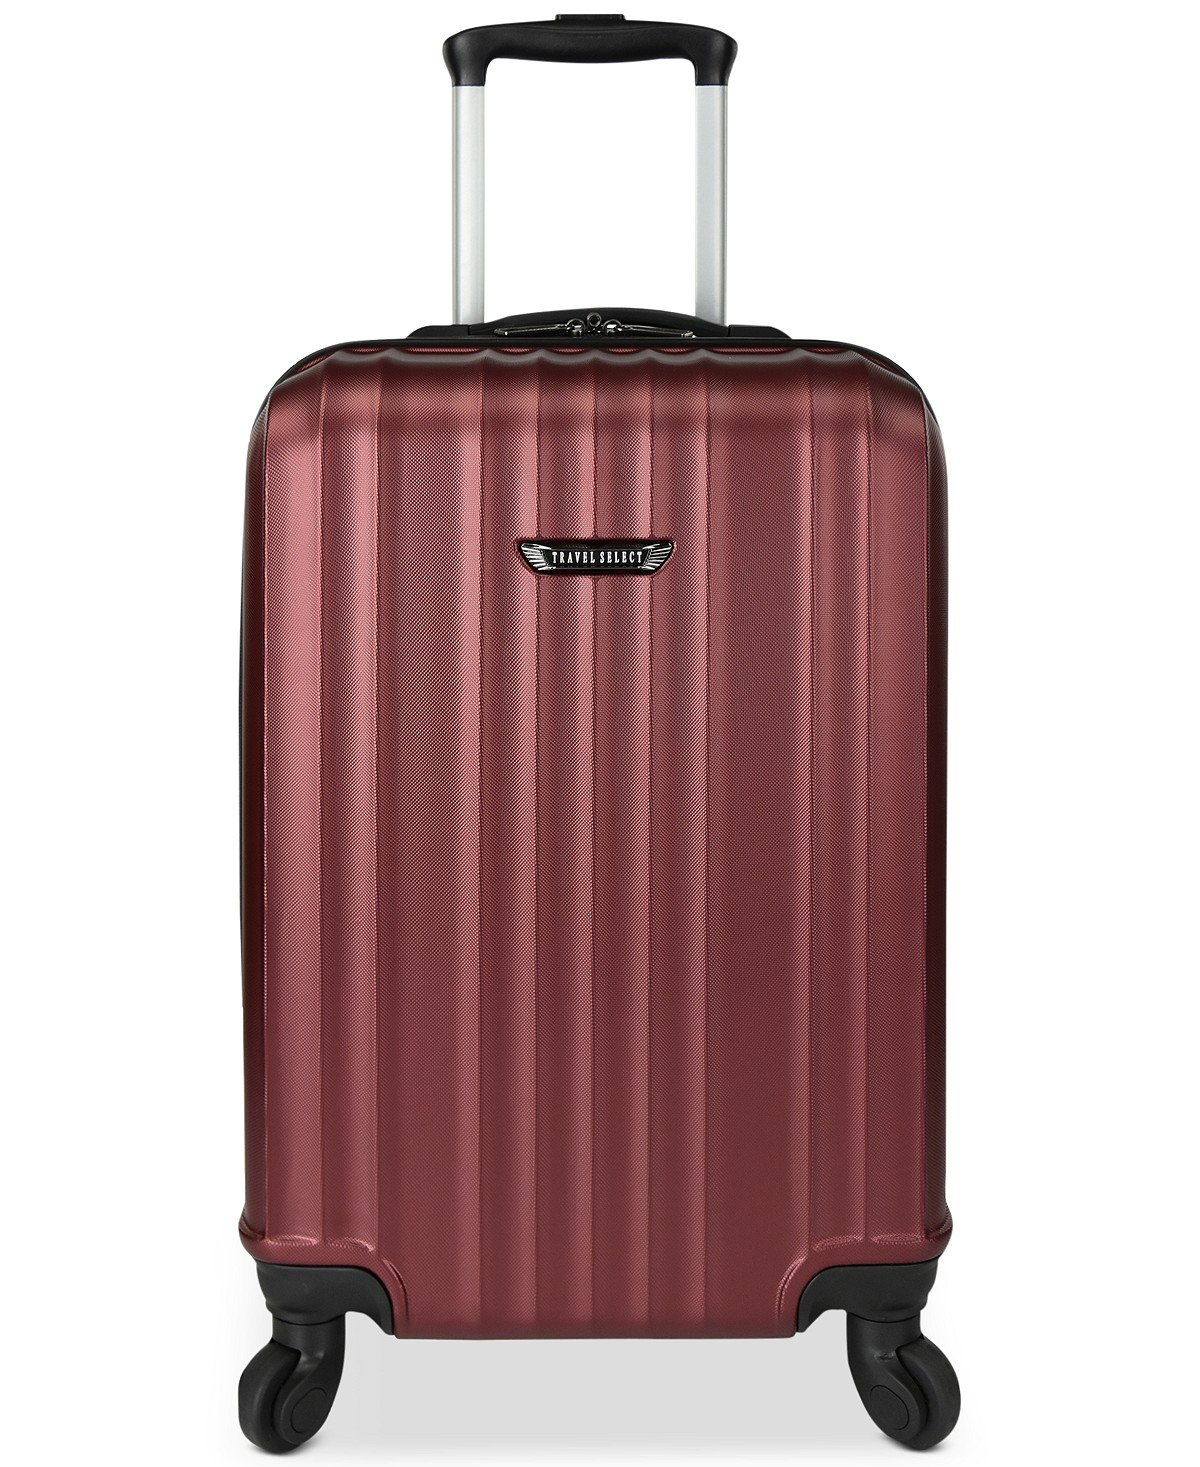 "$220 Travel Select Durango 20.5"" Hardside Carry-On Spinner Suitcase Red"